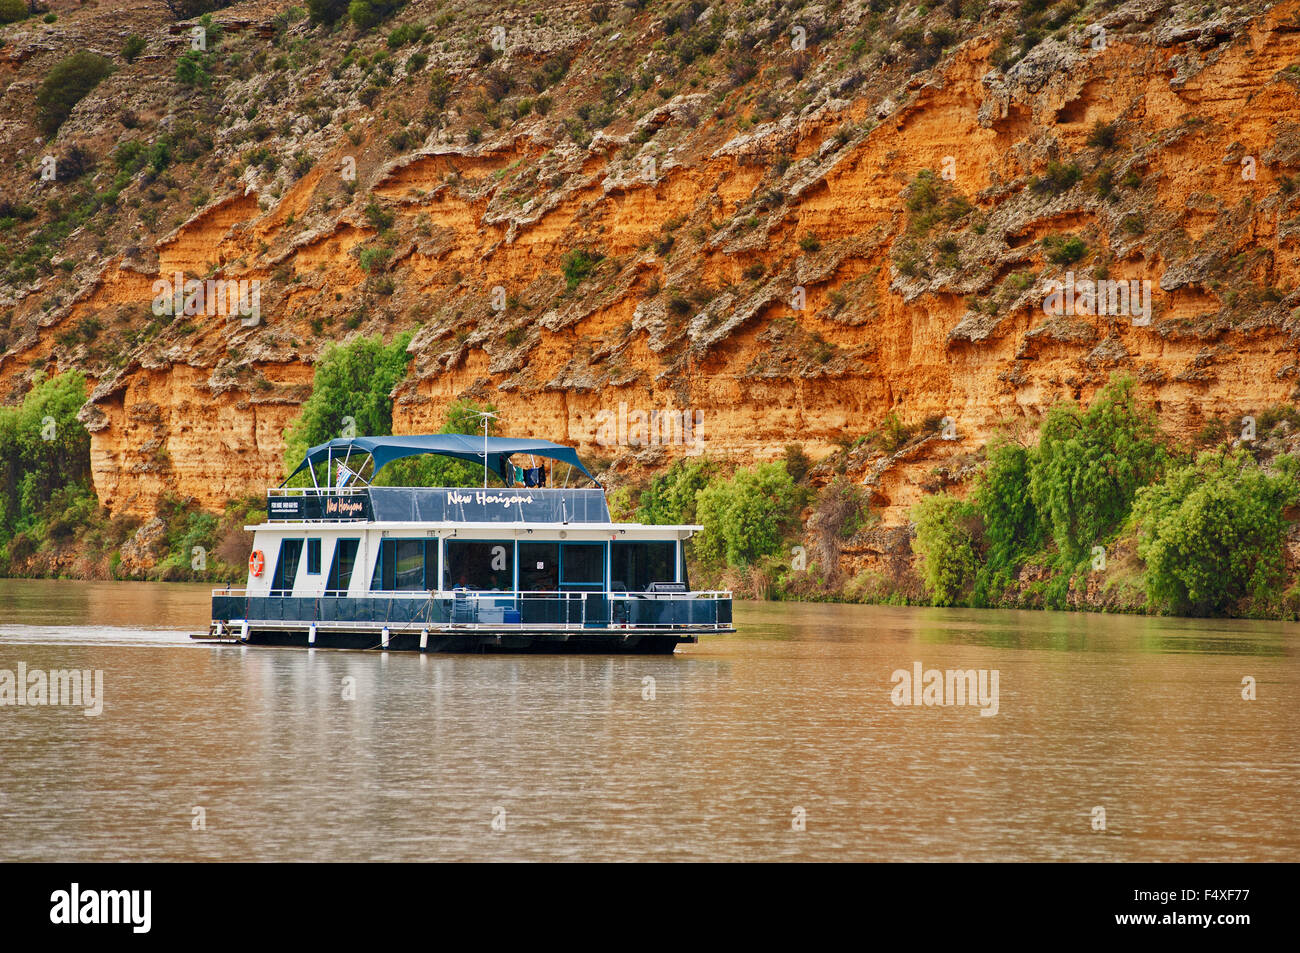 Houseboat cruising on Murray River in front of high cliffs. Stock Photo